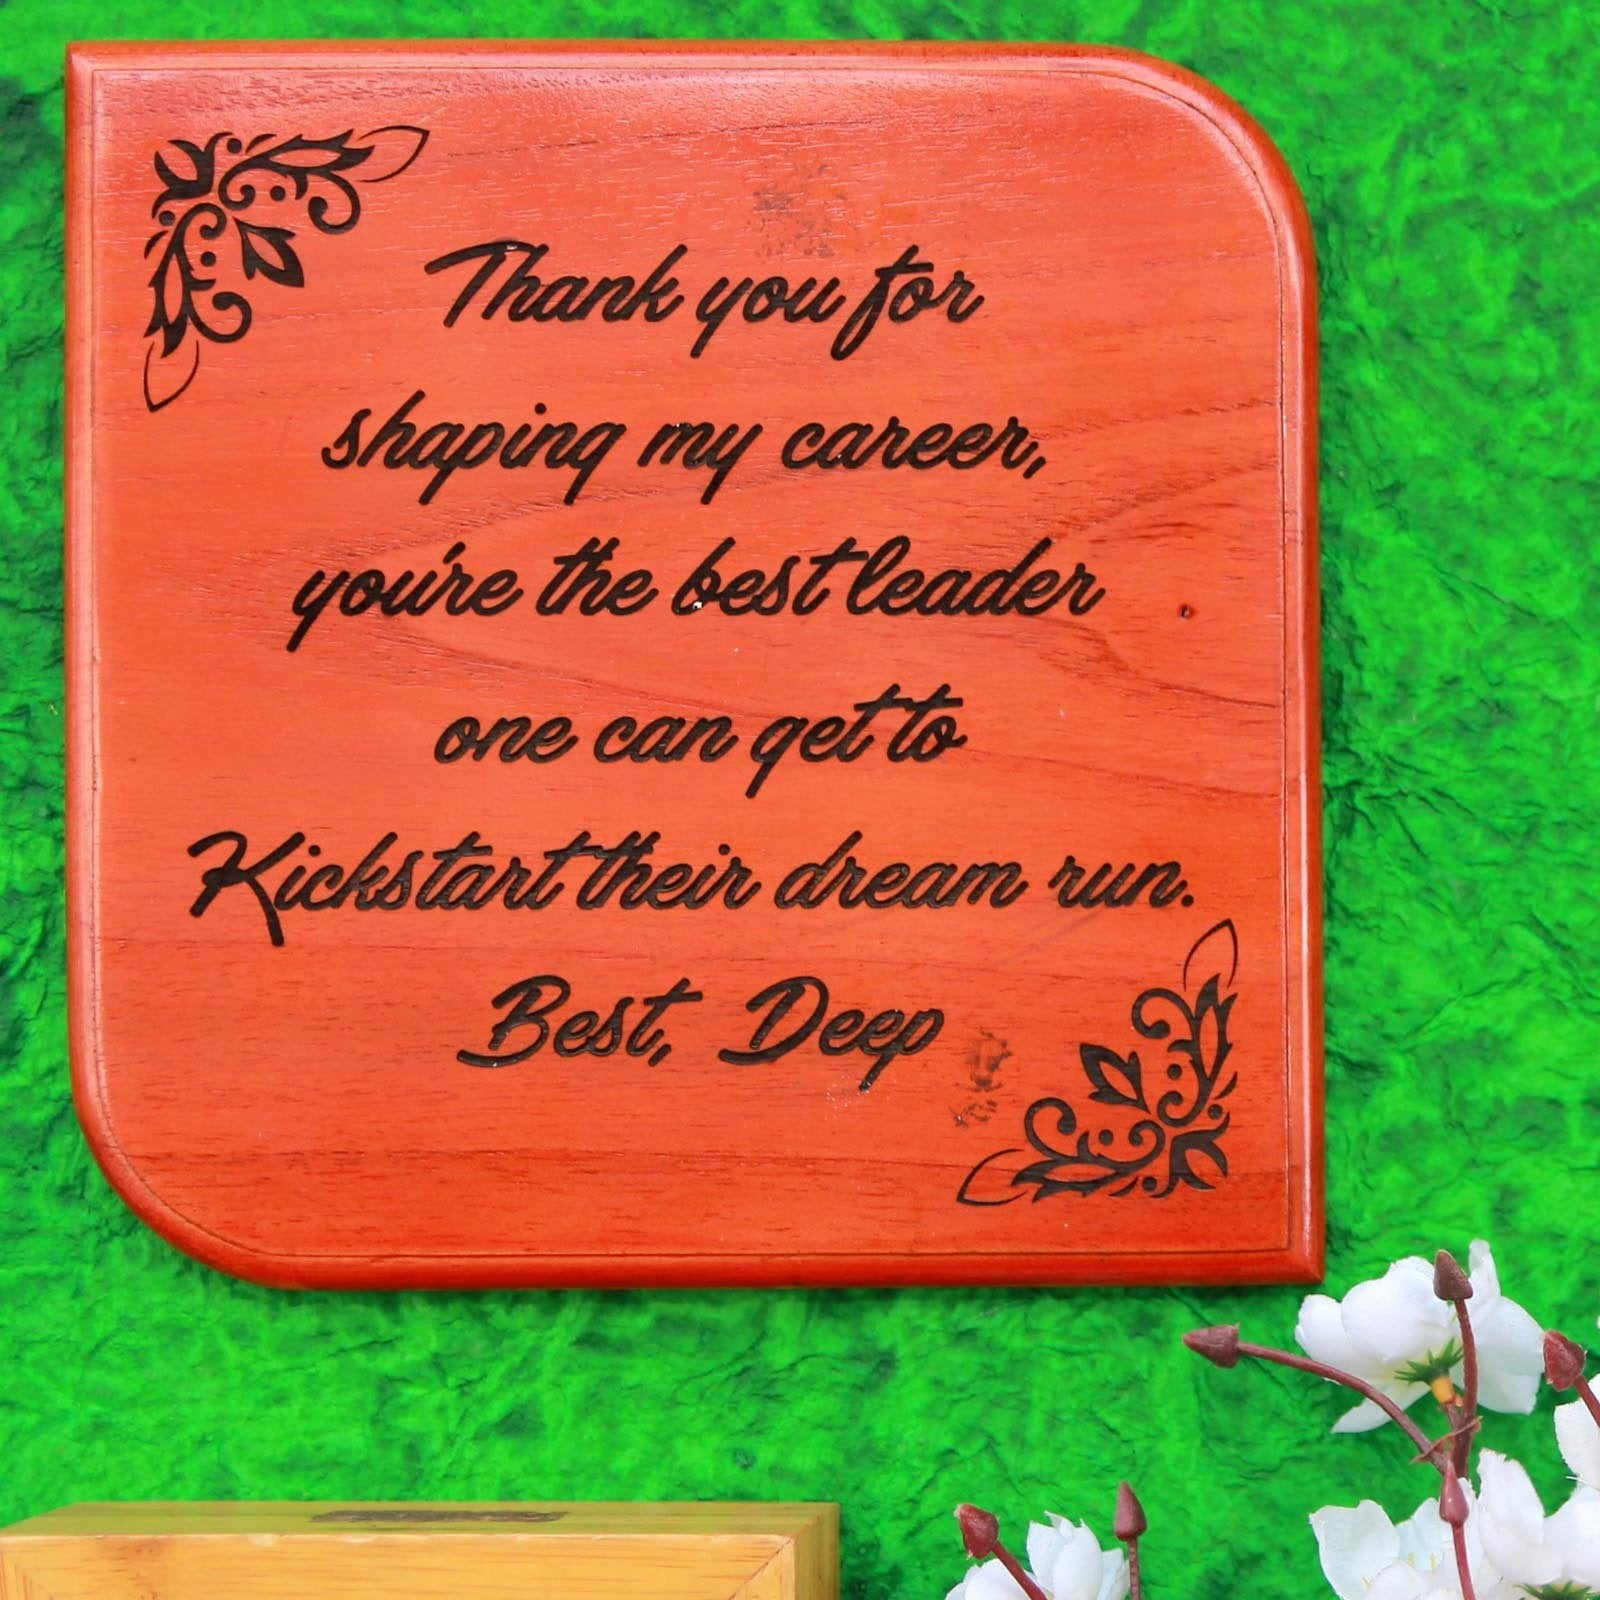 Thank you for shaping my career. You are the best leader one can get to kickstart their dream run. This wooden plaque makes great gifts for boss, gifts for managers or gifts for mentors.